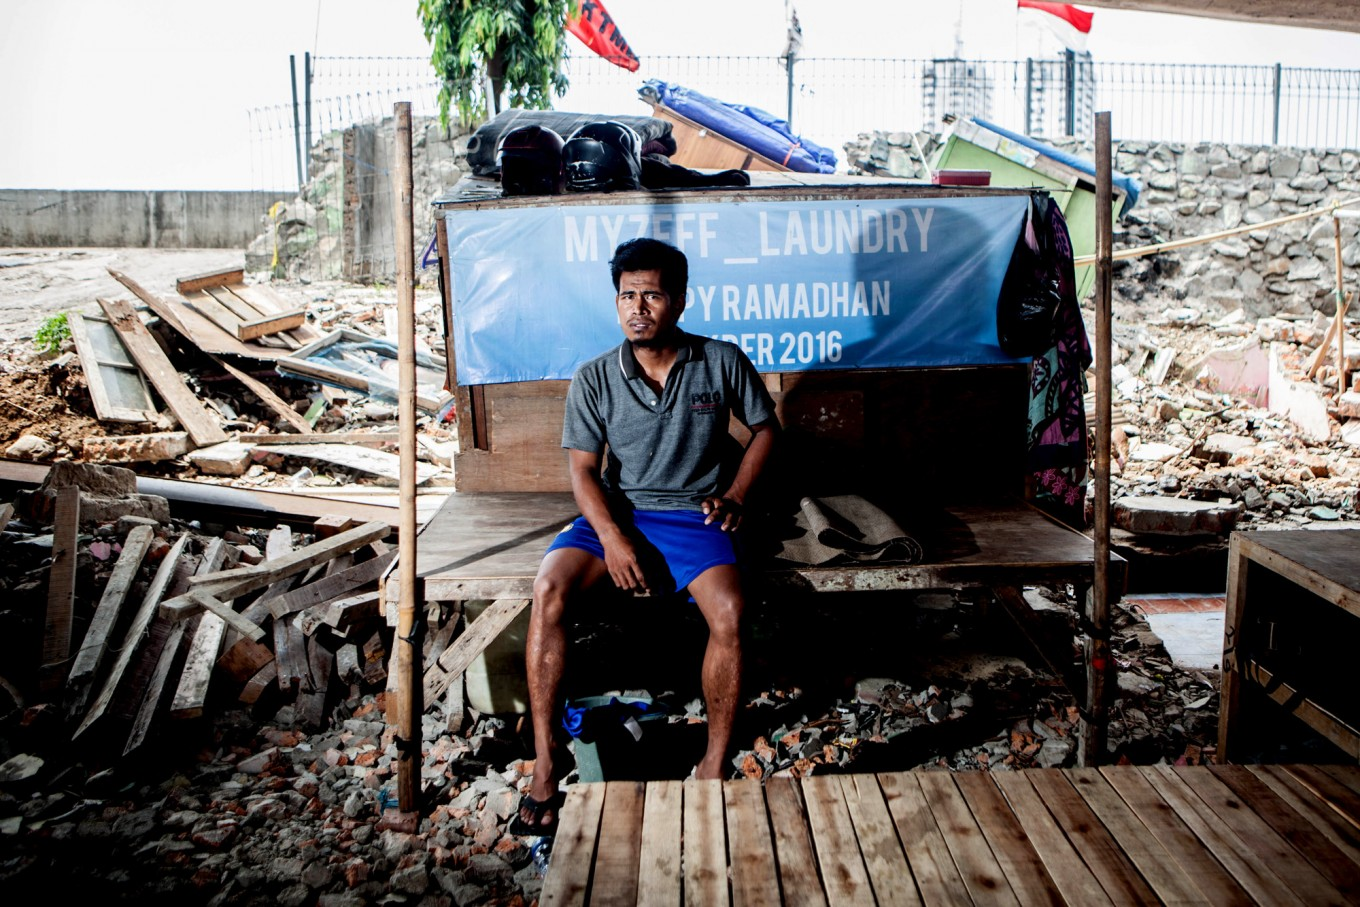 Rachman, 27, lives alone in his shack, Pejagalan, Jakarta, August 2016. He has lived there since 2007. He sent her wife back to his hometown in Sumatra since the eviction. He was a parking attendant before but with the business in Kalijodo gone he now works odd jobs, if there is any. JP/Seto Wardhana